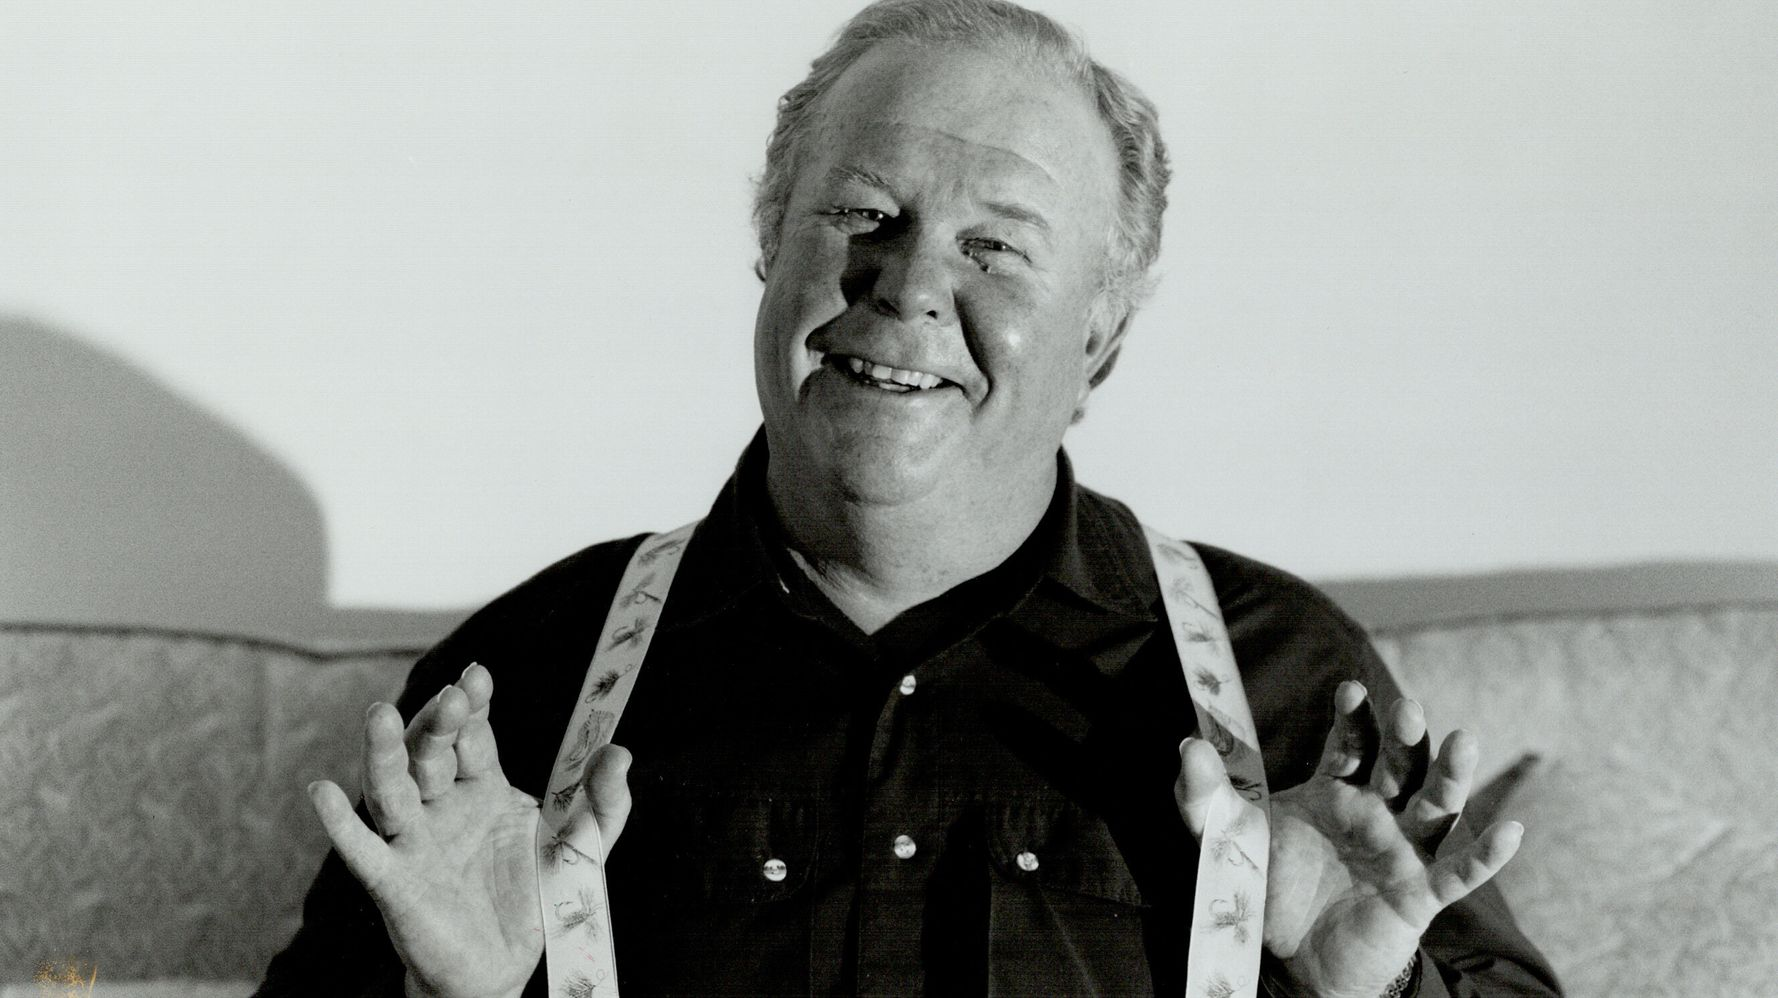 'Deliverance' Actor Ned Beatty Dies At 83